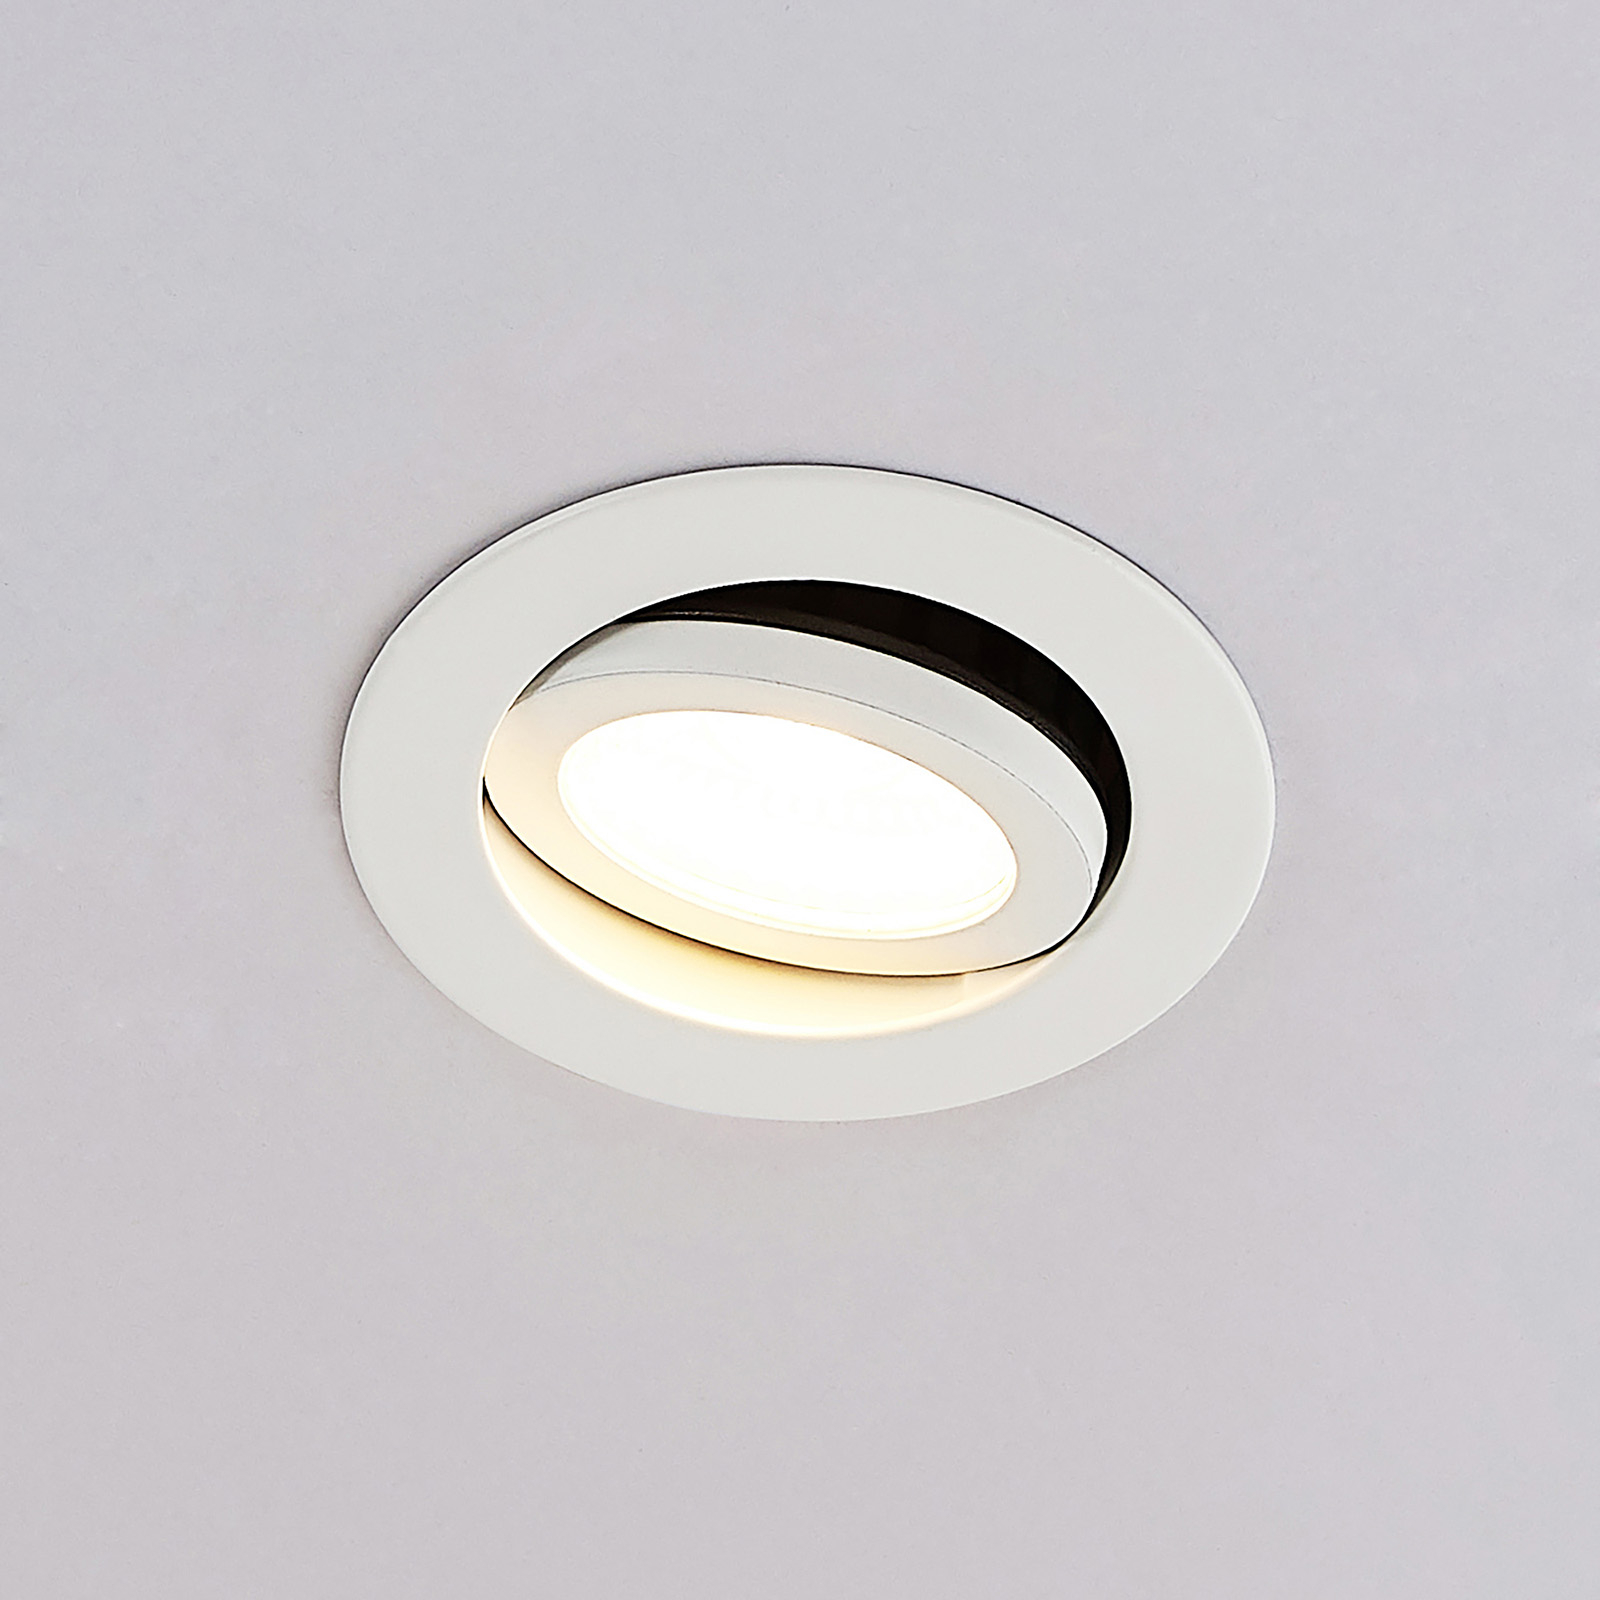 Arcchio Nabor LED-downlight 36° 2700K, IP65, 6,4W